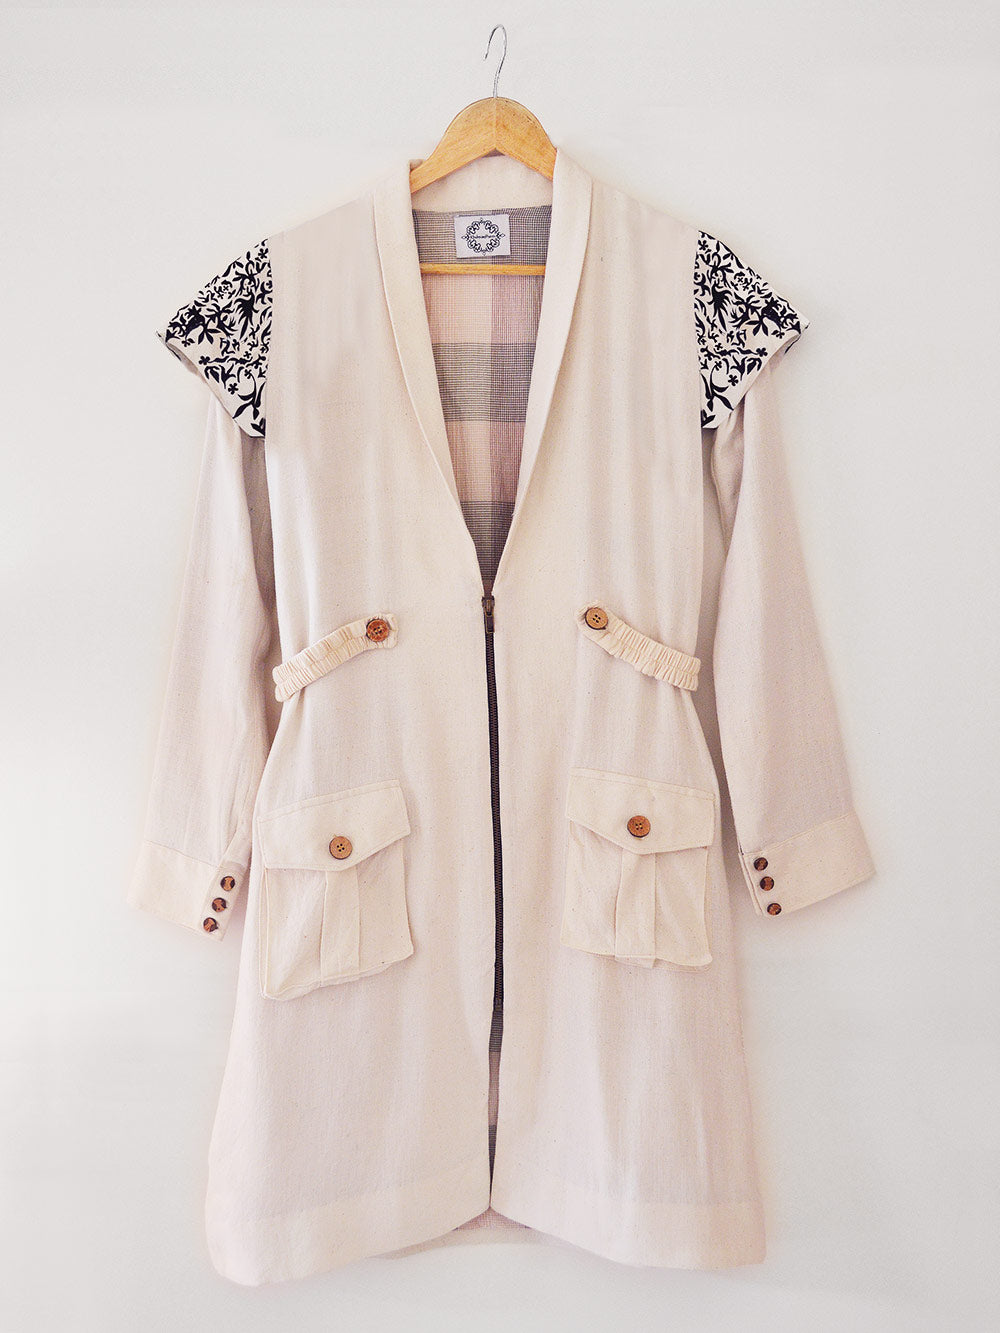 Handwoven Embroidered trench coat, unbleached white colour, designed by Khumanthem Atelier